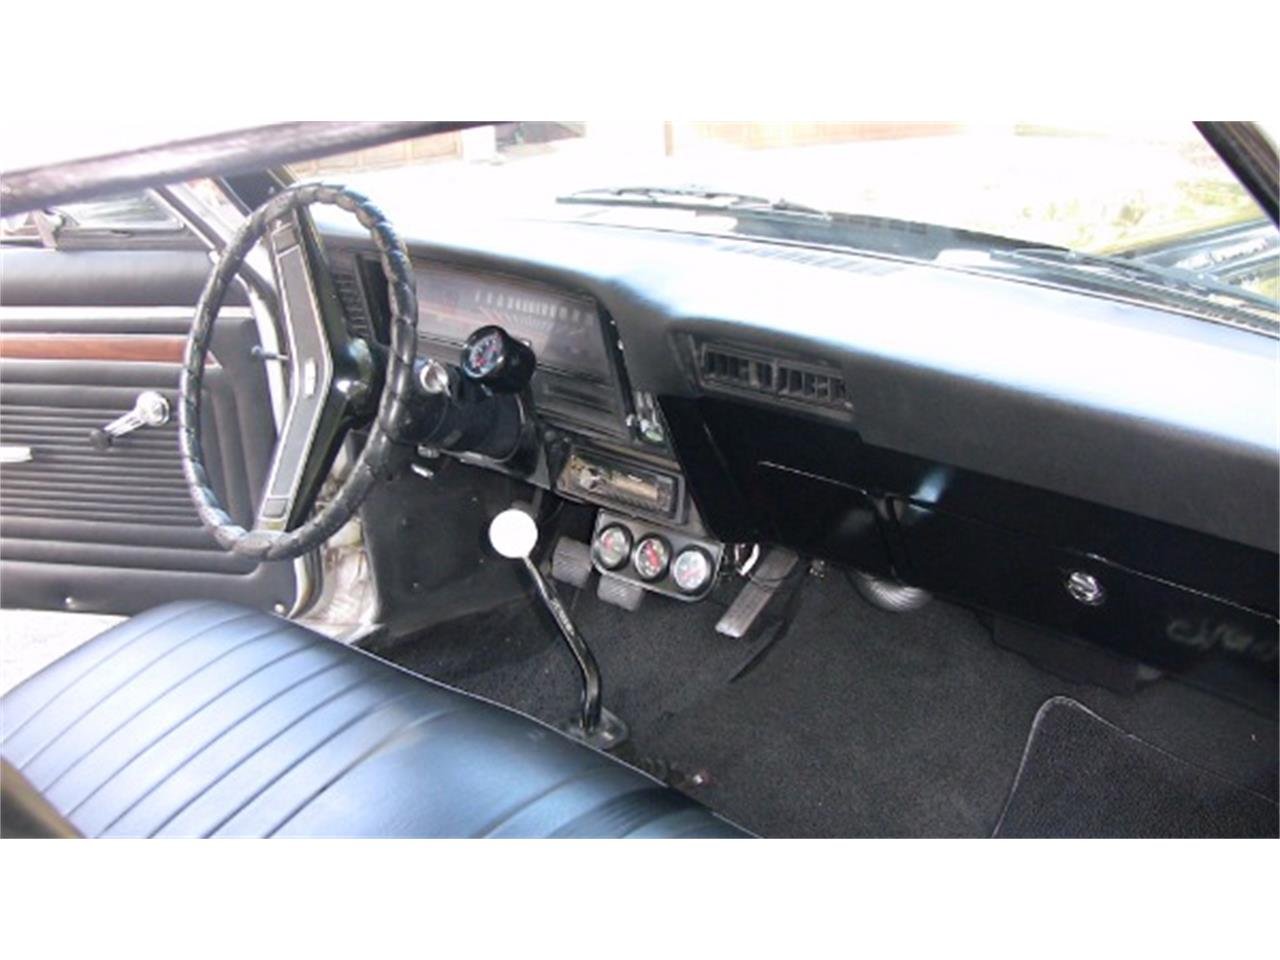 Large Picture of Classic 1971 Chevrolet Nova located in North Carolina - $39,200.00 - K94K